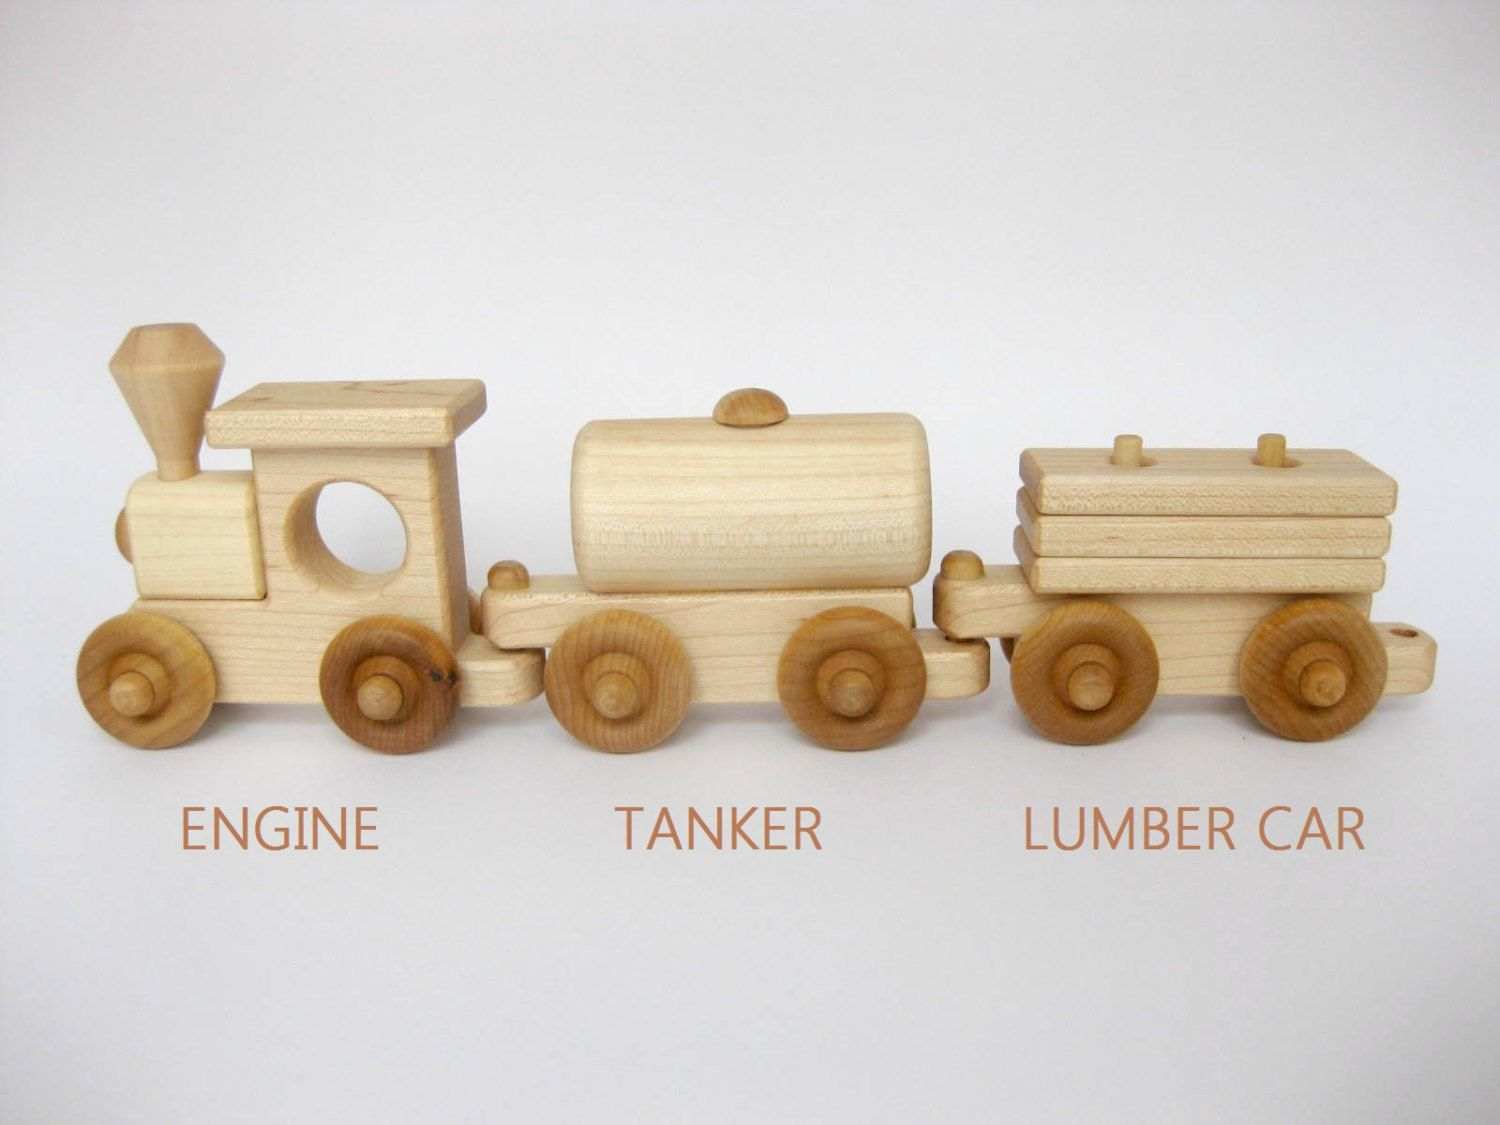 Wooden Toy Train Set 3 Cars Natural Wood Toy Wooden